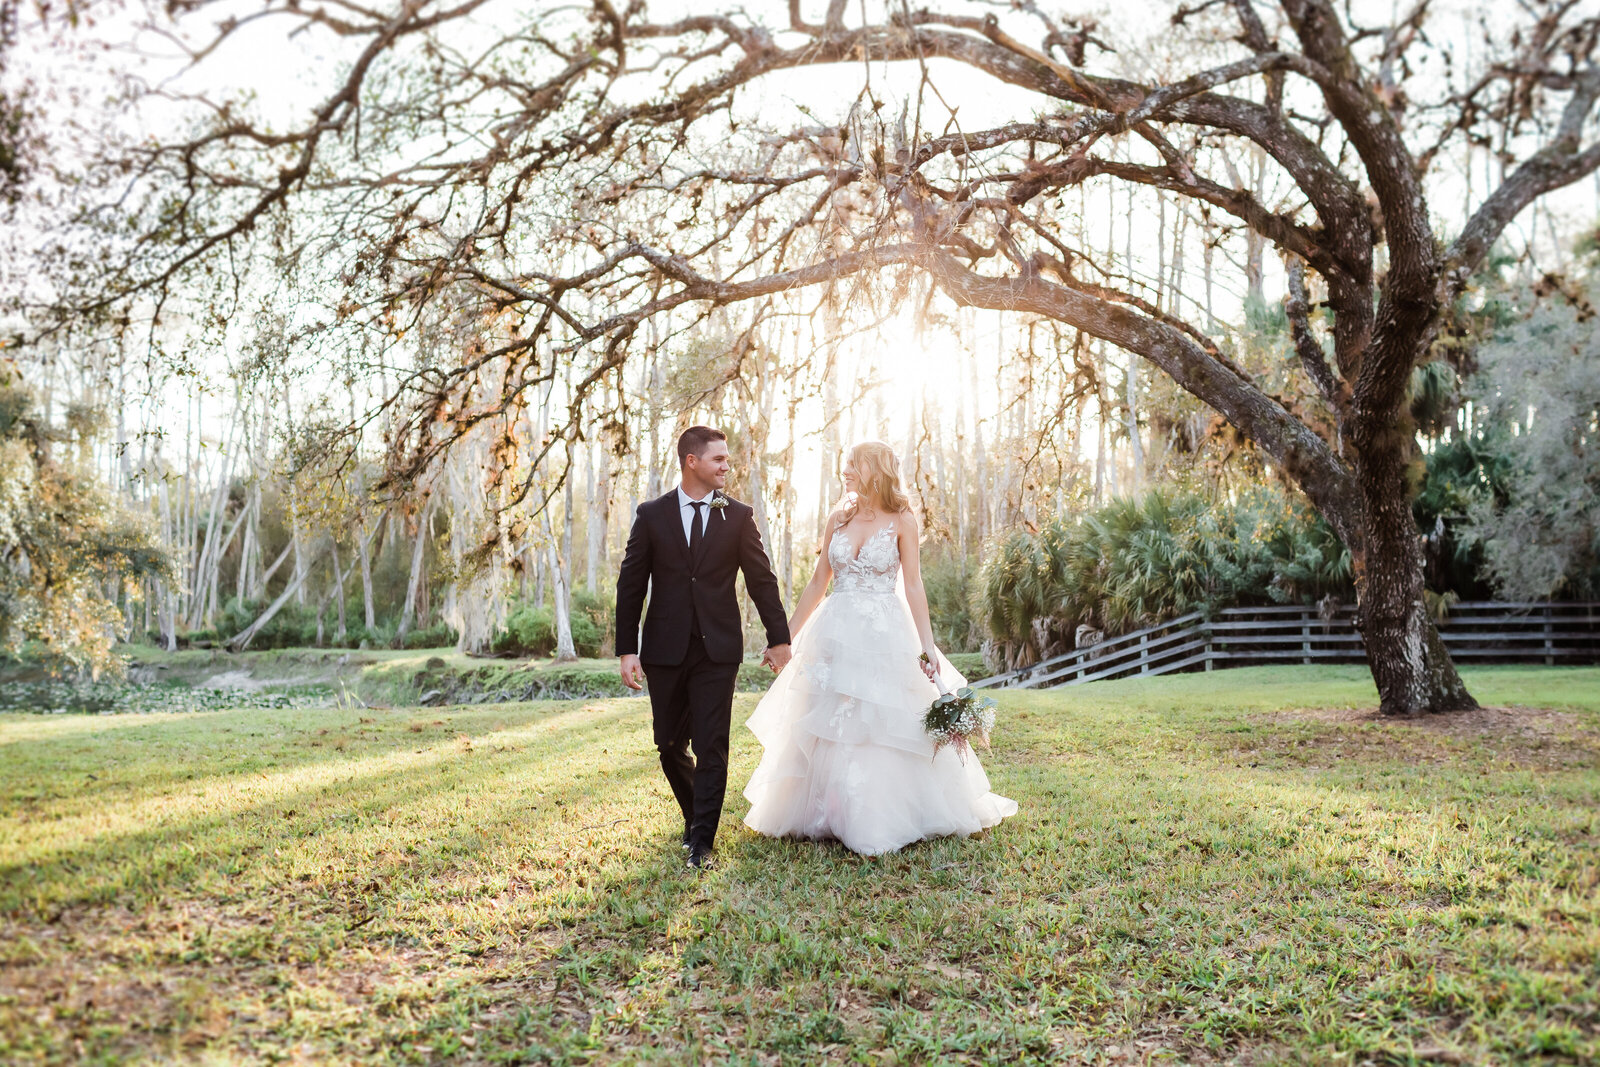 arching oaks ranch wedding sydney and derek - brandi watford photography 0263